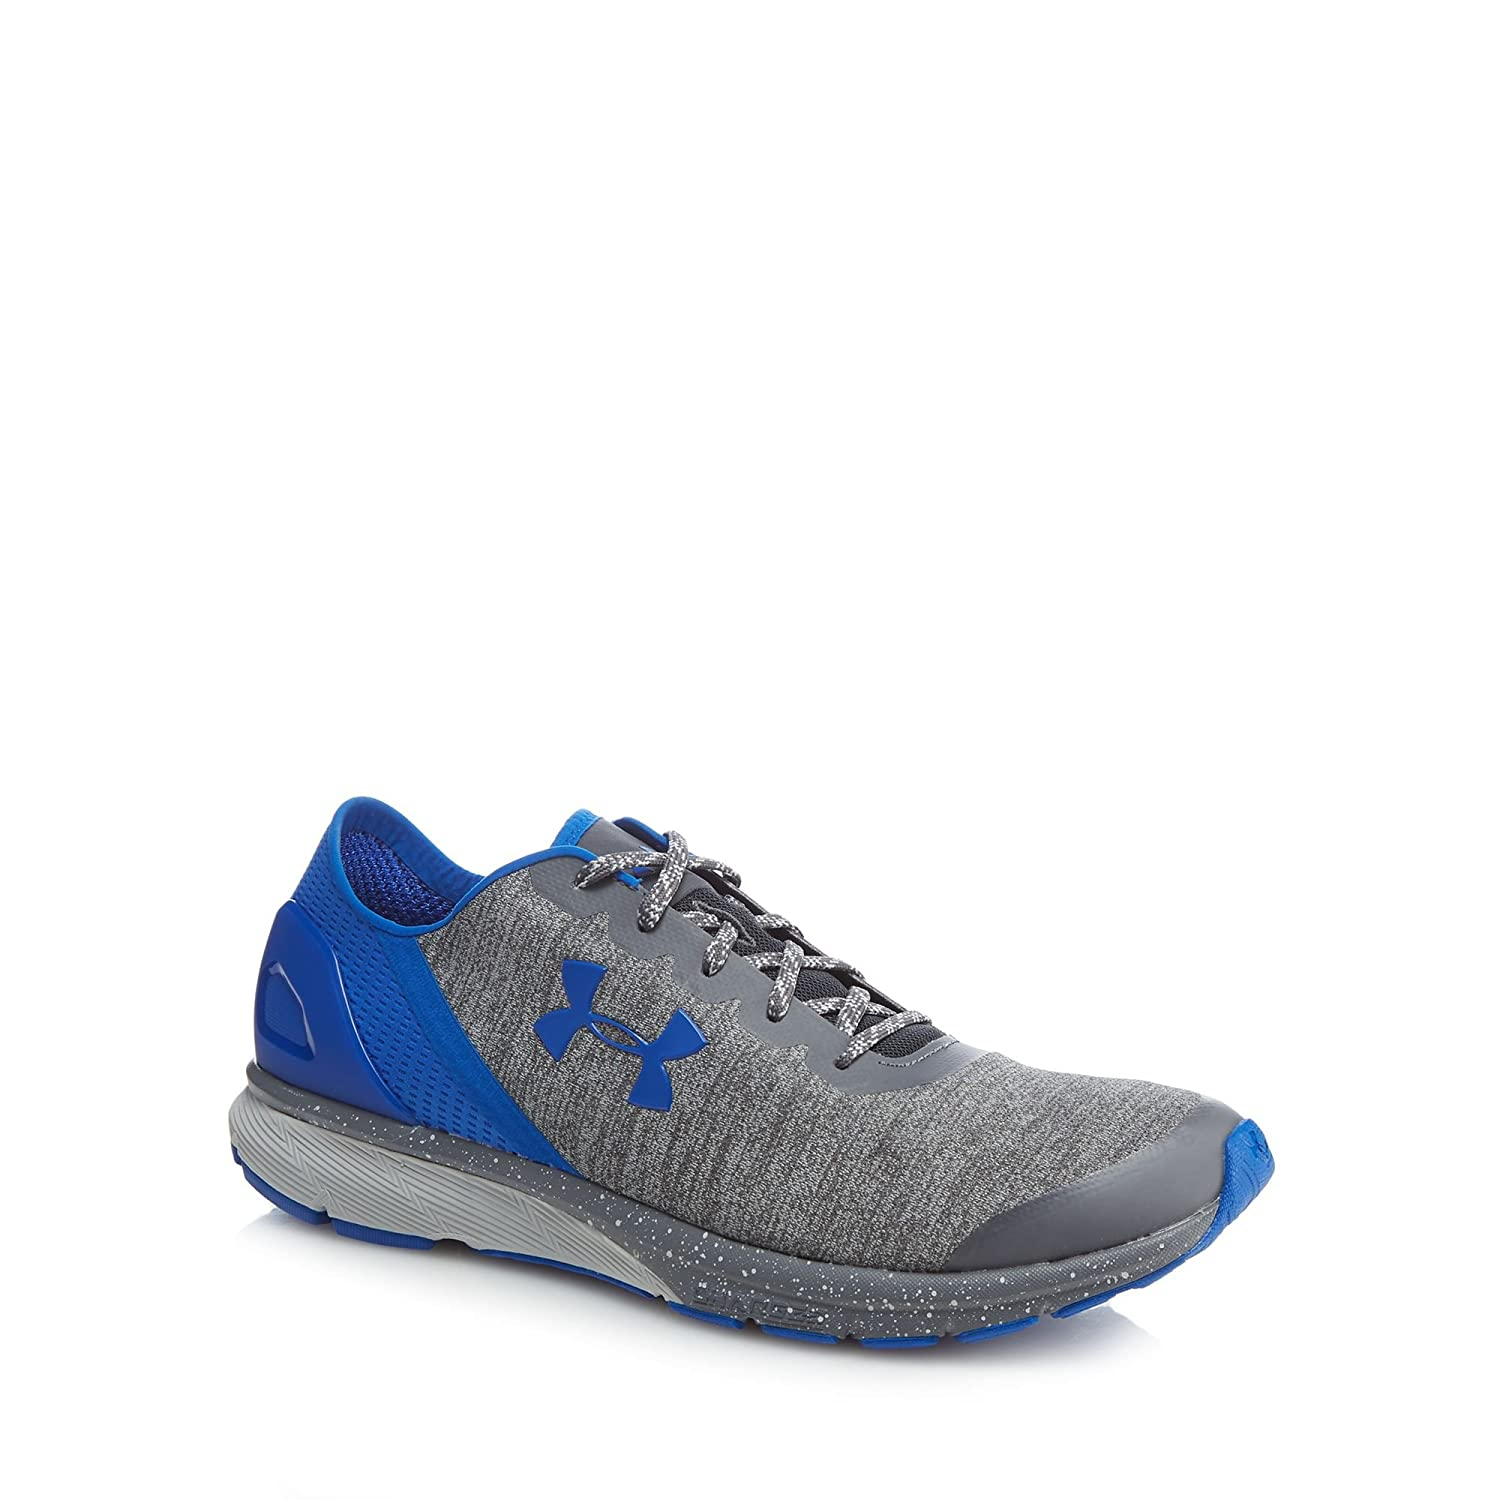 014c0ad04d846 Under Armour Men Blue 'Ua Charged Escape' Running Shoes: Amazon.co ...